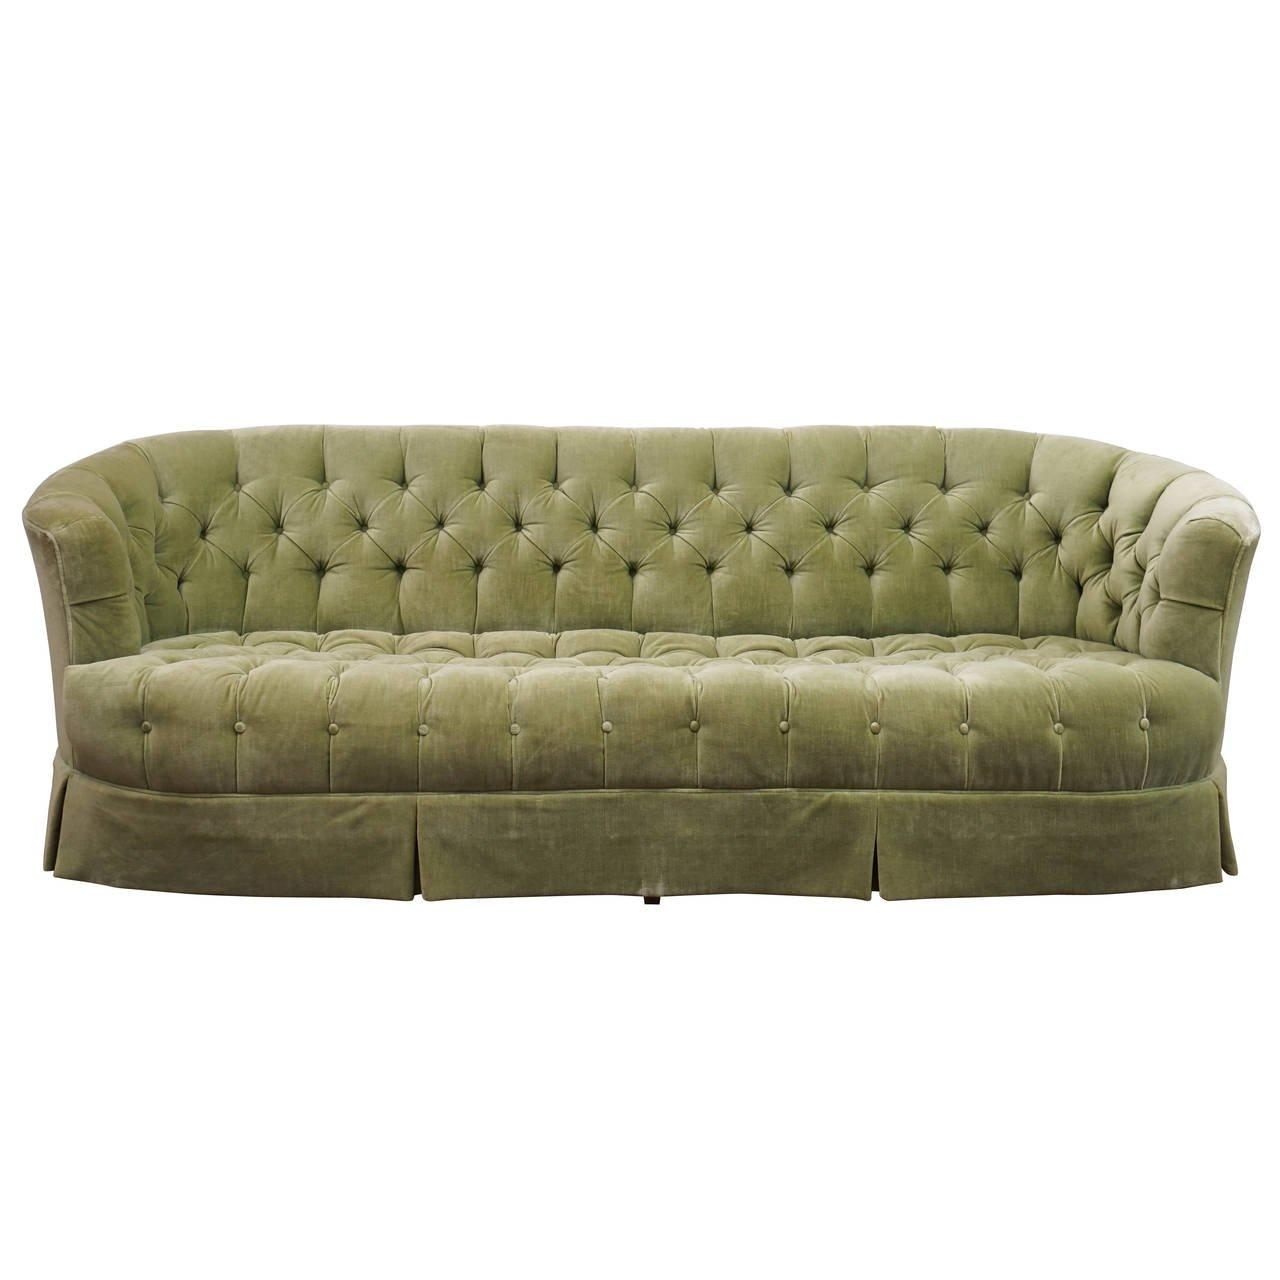 Hollywood Regency Chesterfield Mint Green Velvet Tufted Sofa For Regarding Mint Green Sofas (Image 7 of 20)